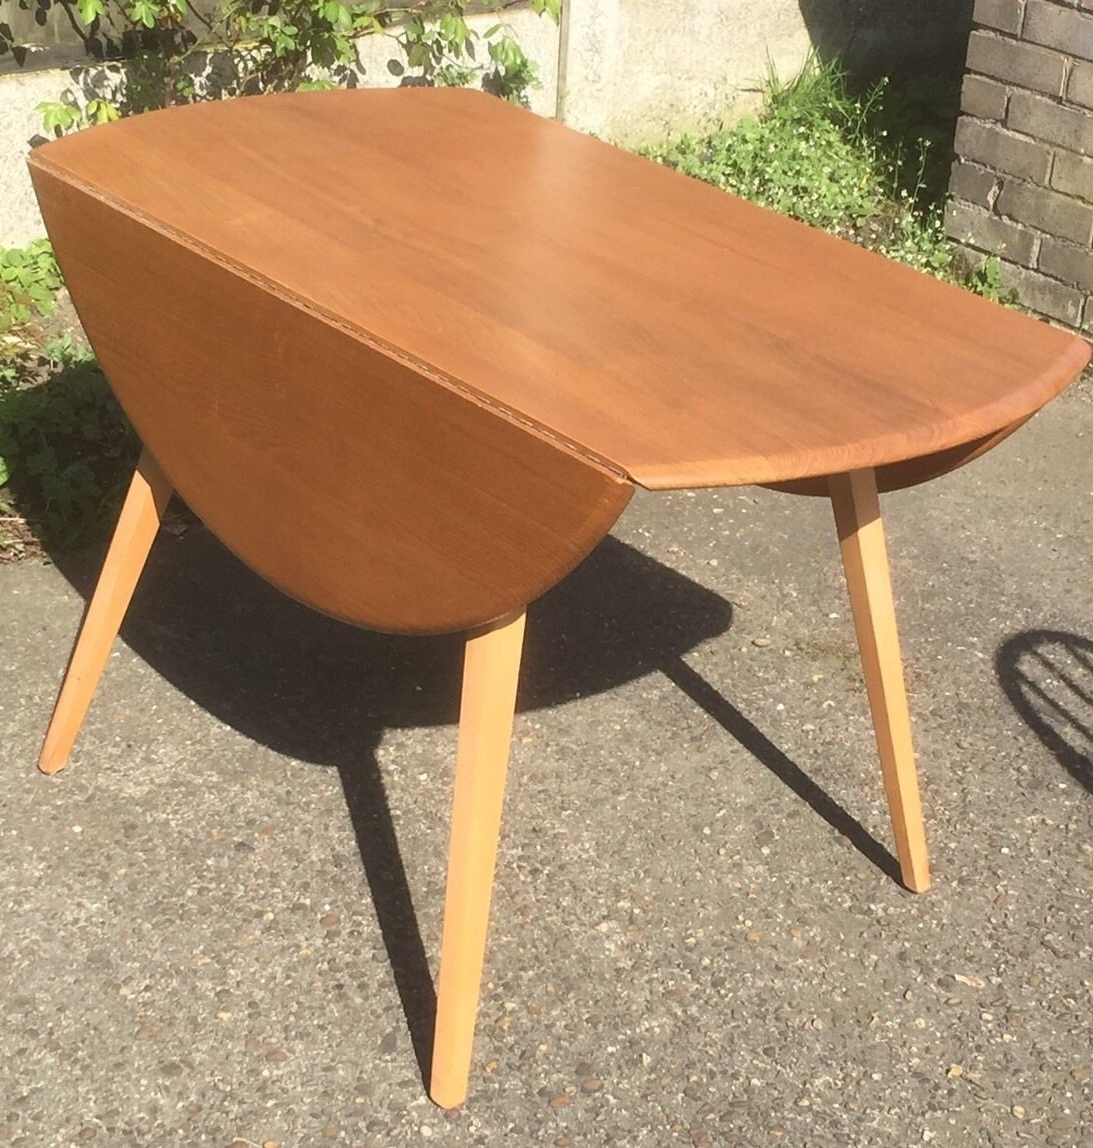 Superb Retro Ercol Extending Dining Table & 4 Matching Chairs With Most Recent Retro Extending Dining Tables (View 22 of 25)